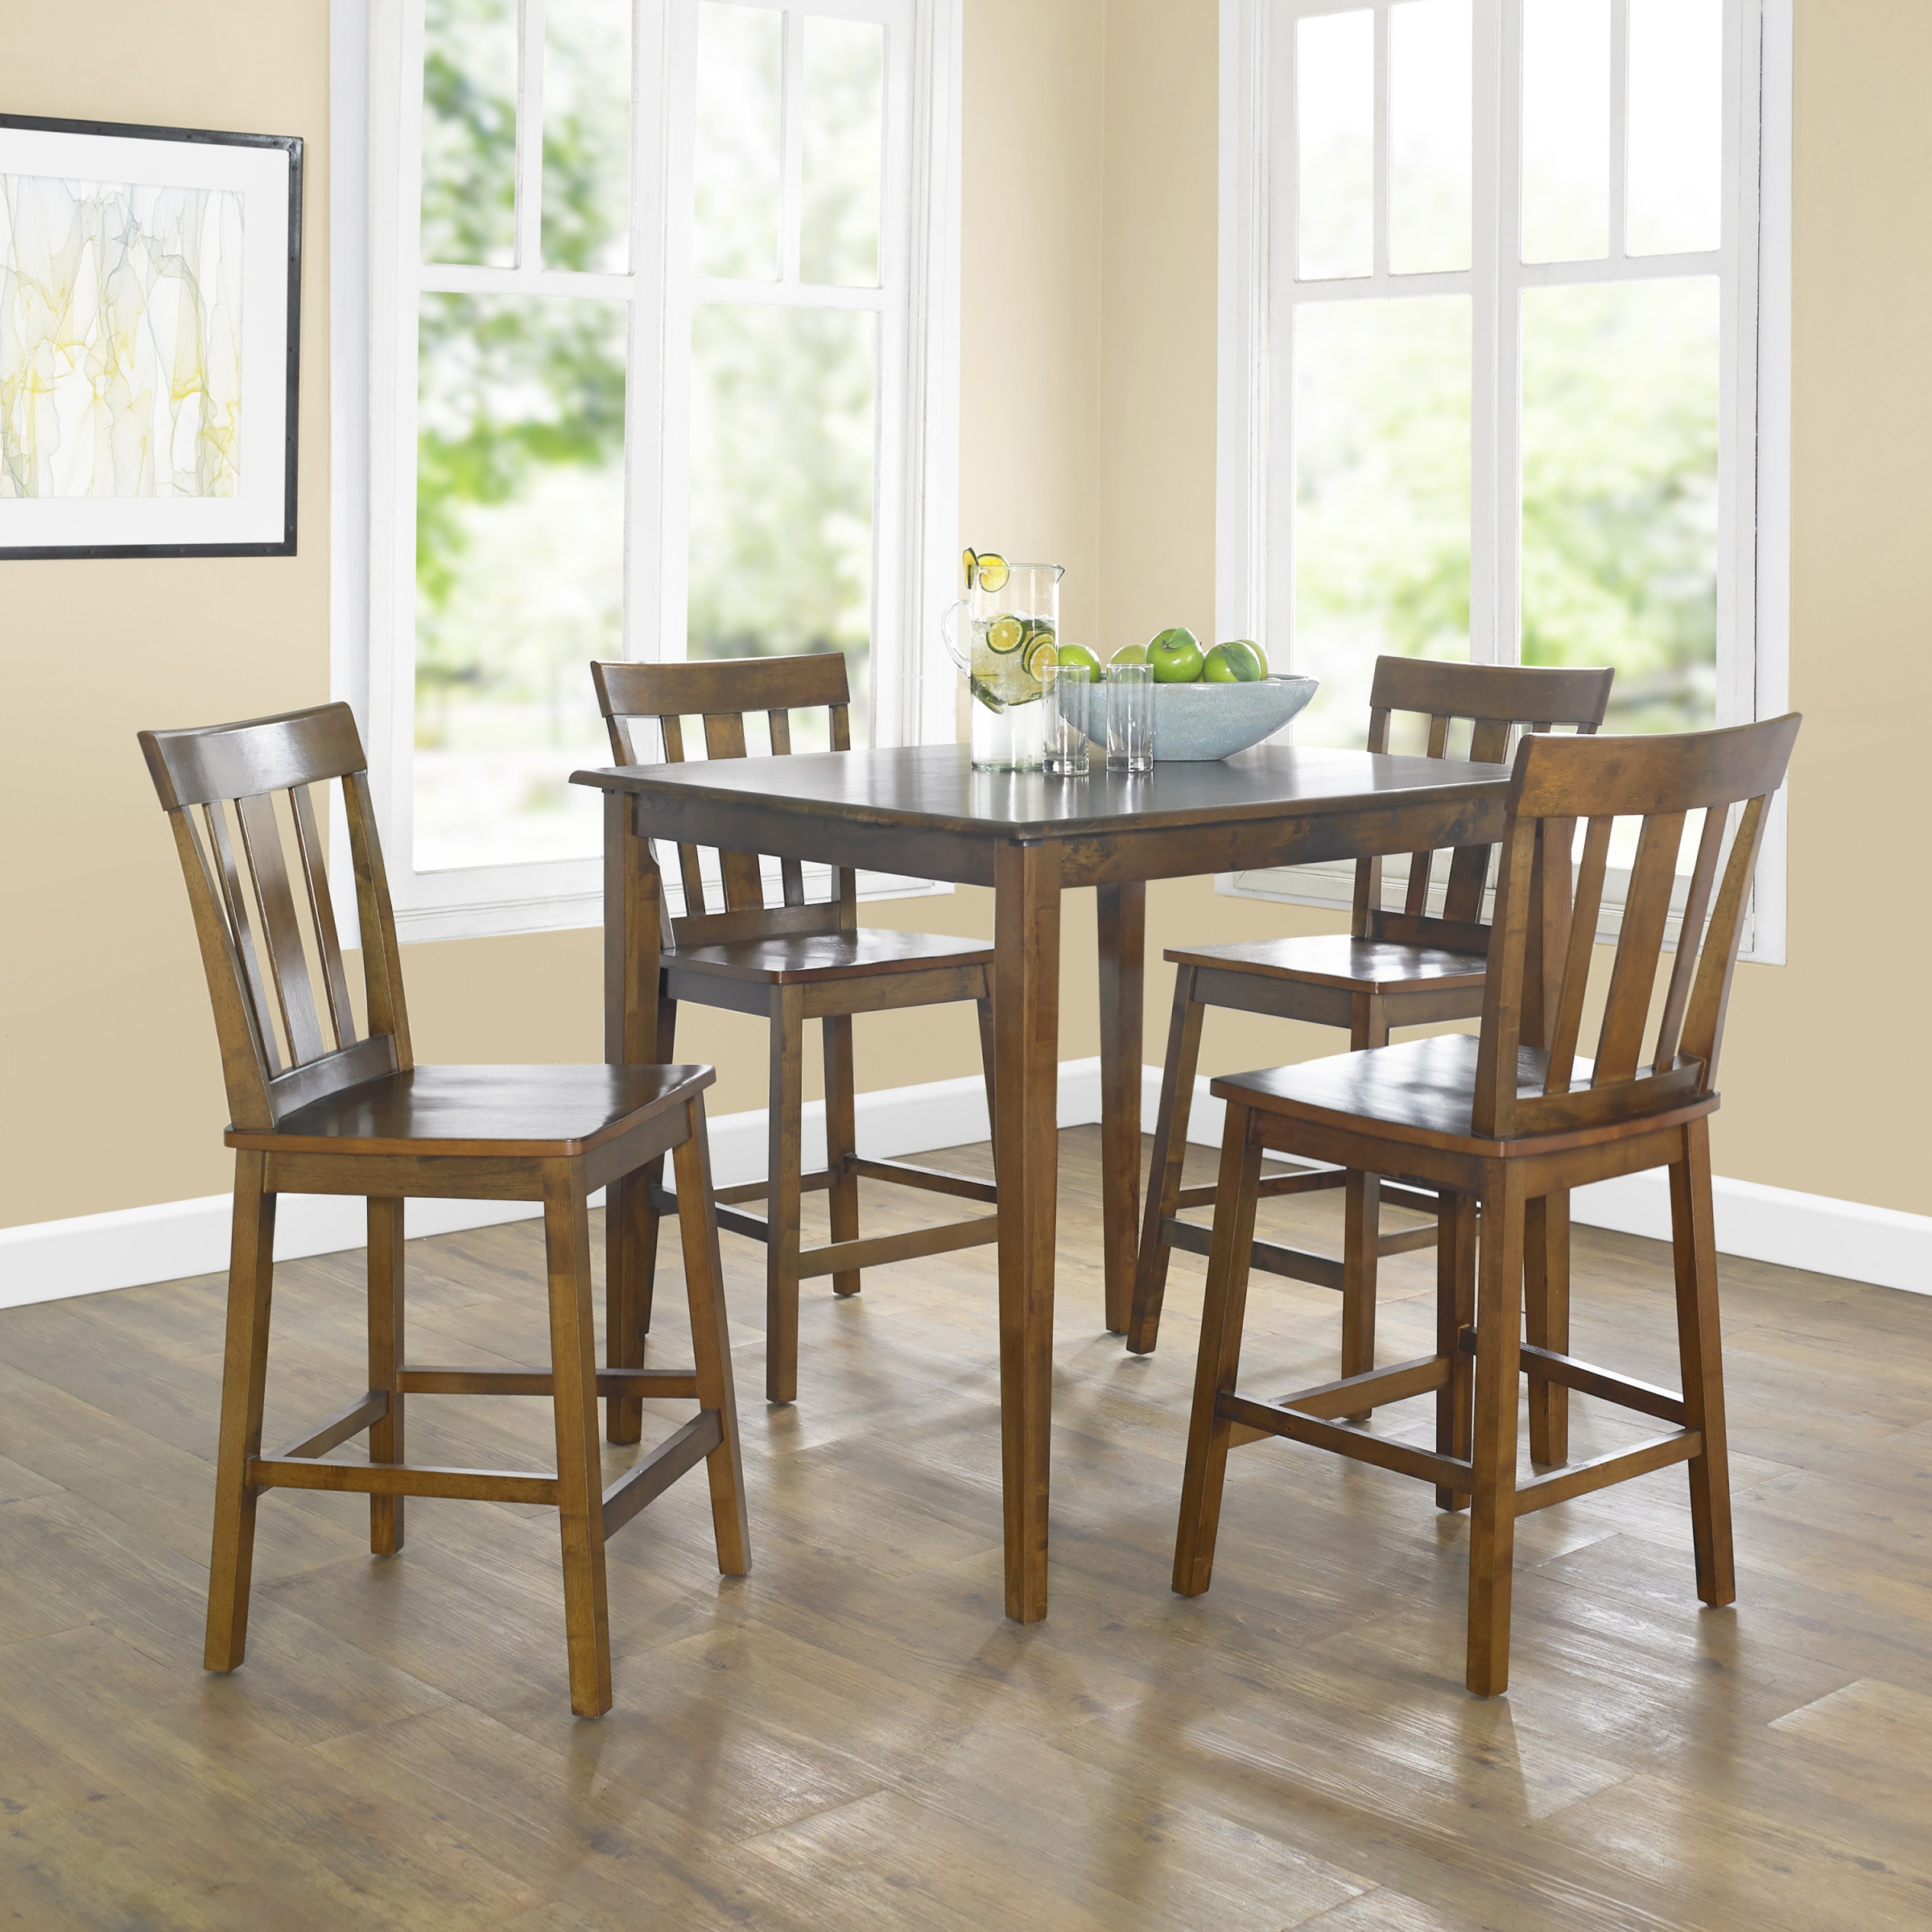 Popular Sheetz 3 Piece Counter Height Dining Sets Throughout Mainstays 5 Piece Mission Counter Height Dining Set – Walmart (View 7 of 20)